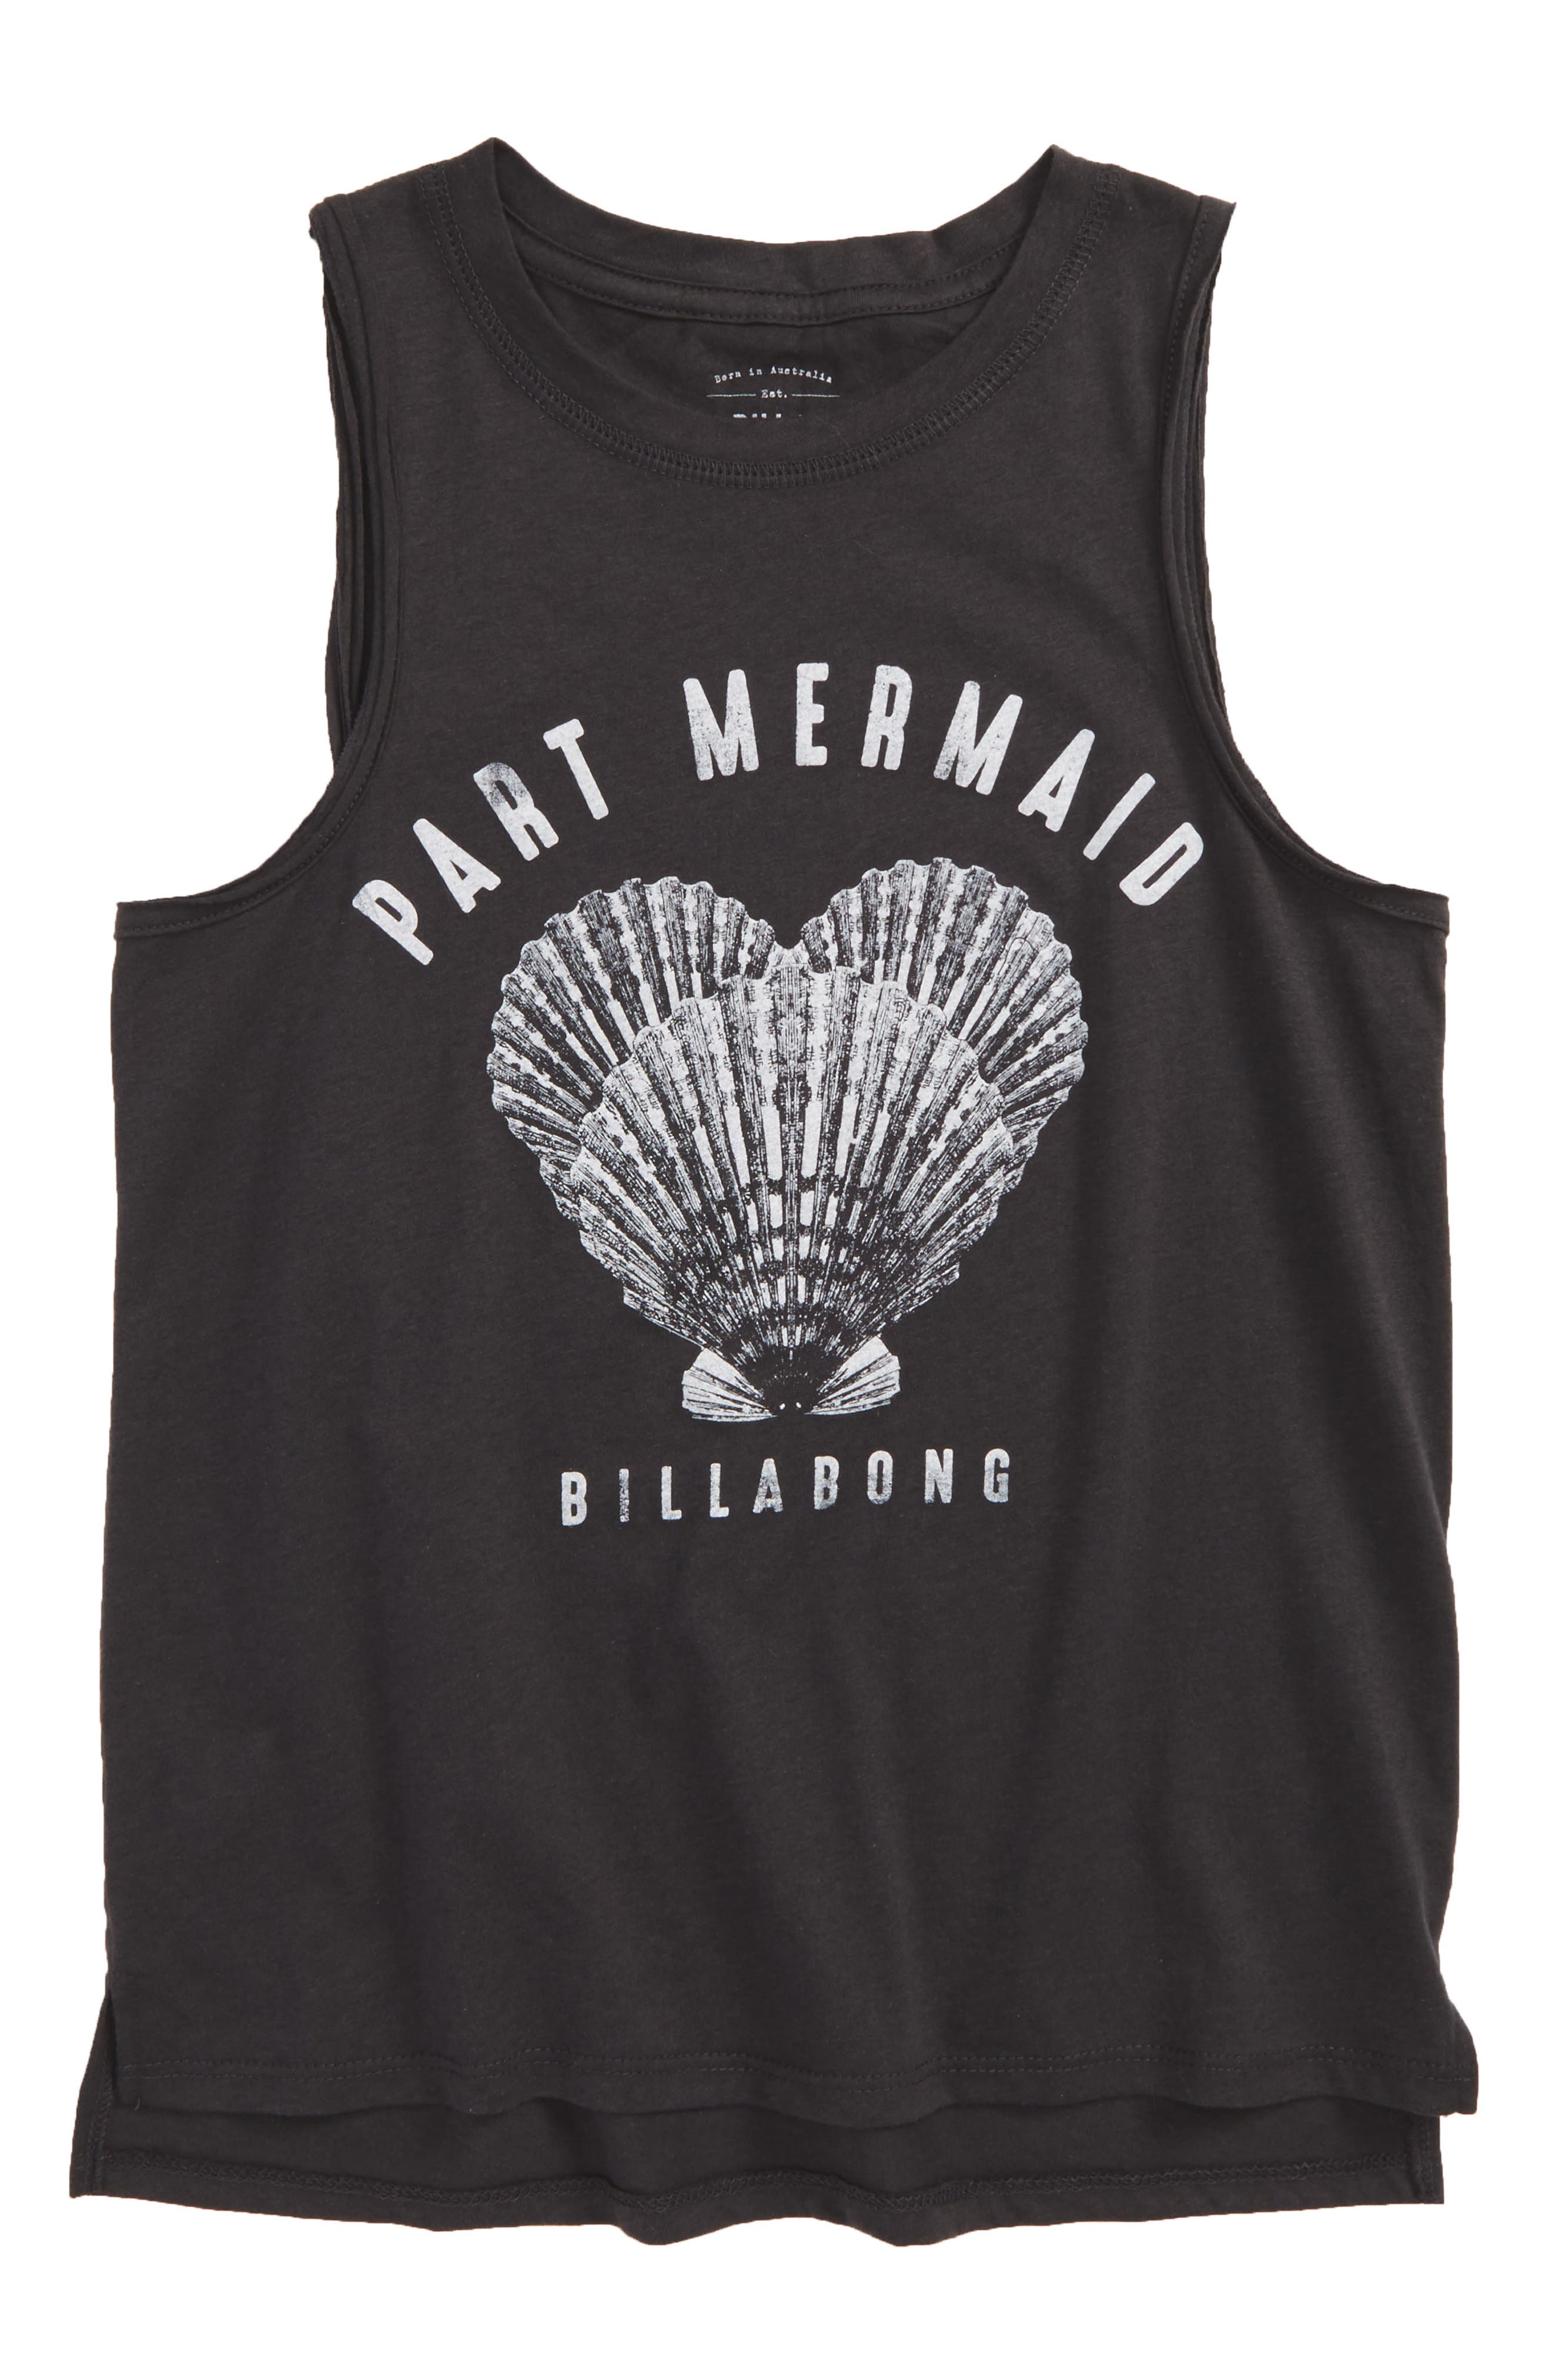 Alternate Image 1 Selected - Billabong Part Mermaid Graphic Tank (Little Girls & Big Girls)